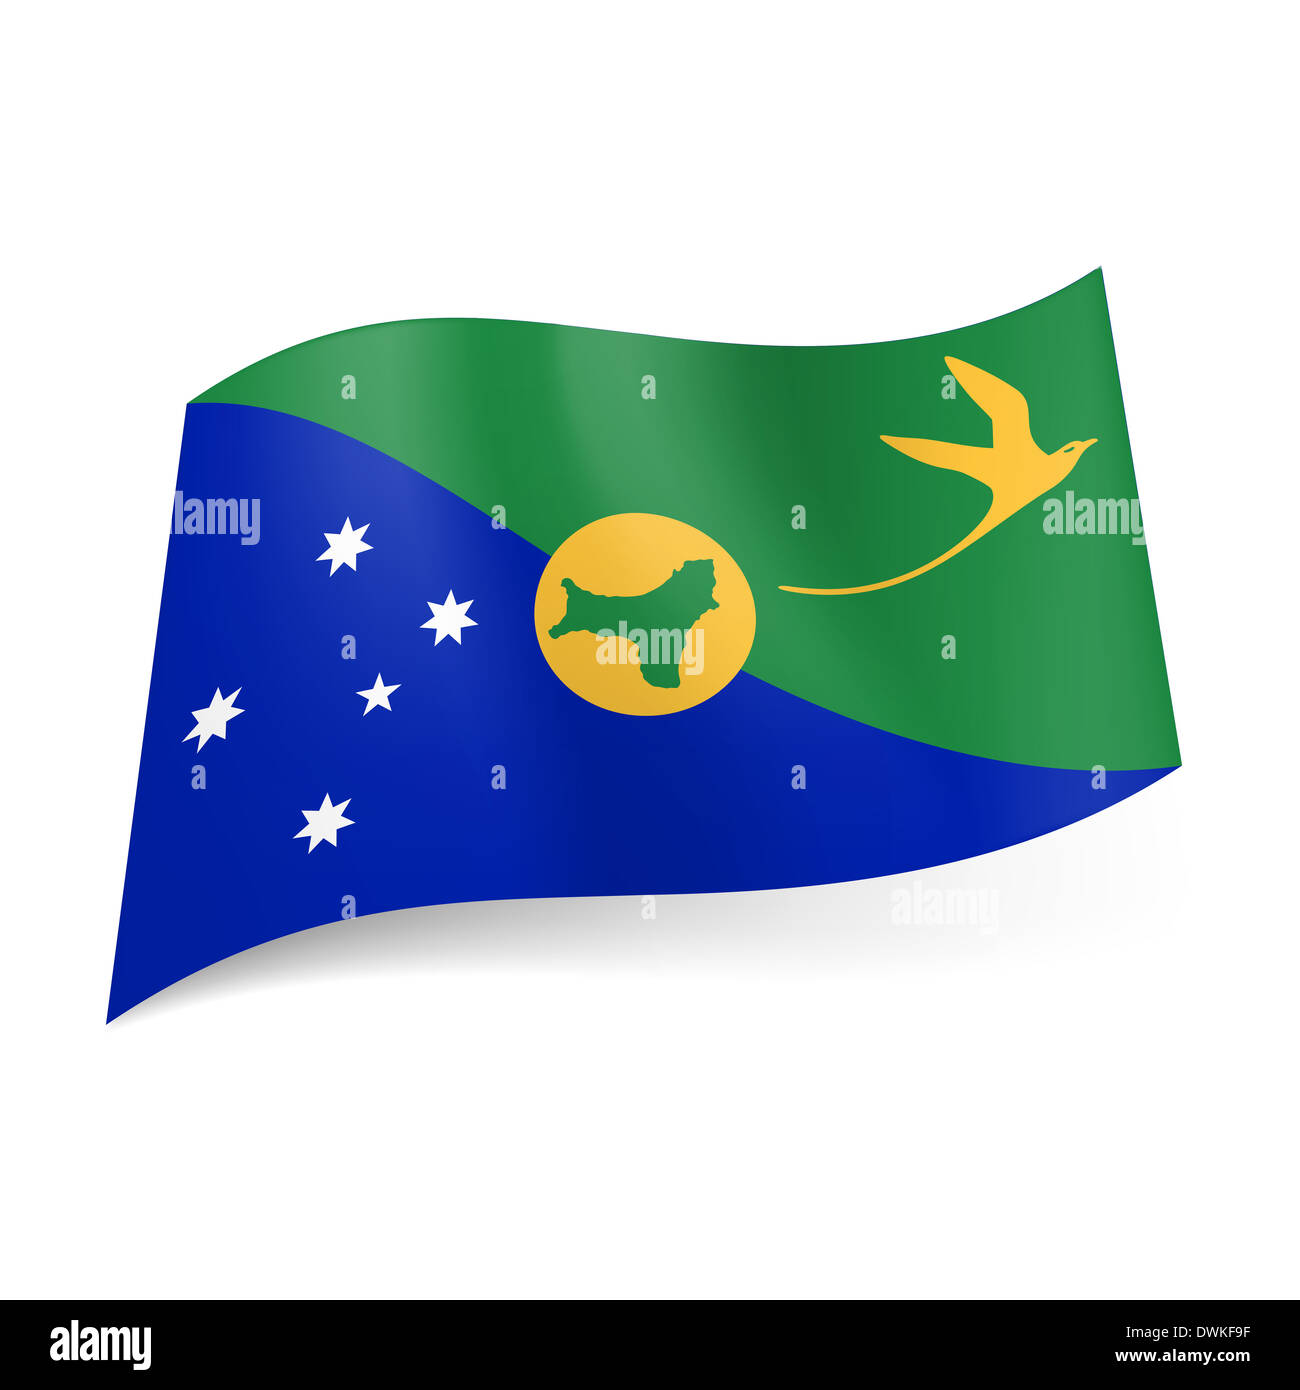 National flag of christmas island blue and green diagonal fields national flag of christmas island blue and green diagonal fields with white stars and blue bird island shape in centre sciox Choice Image